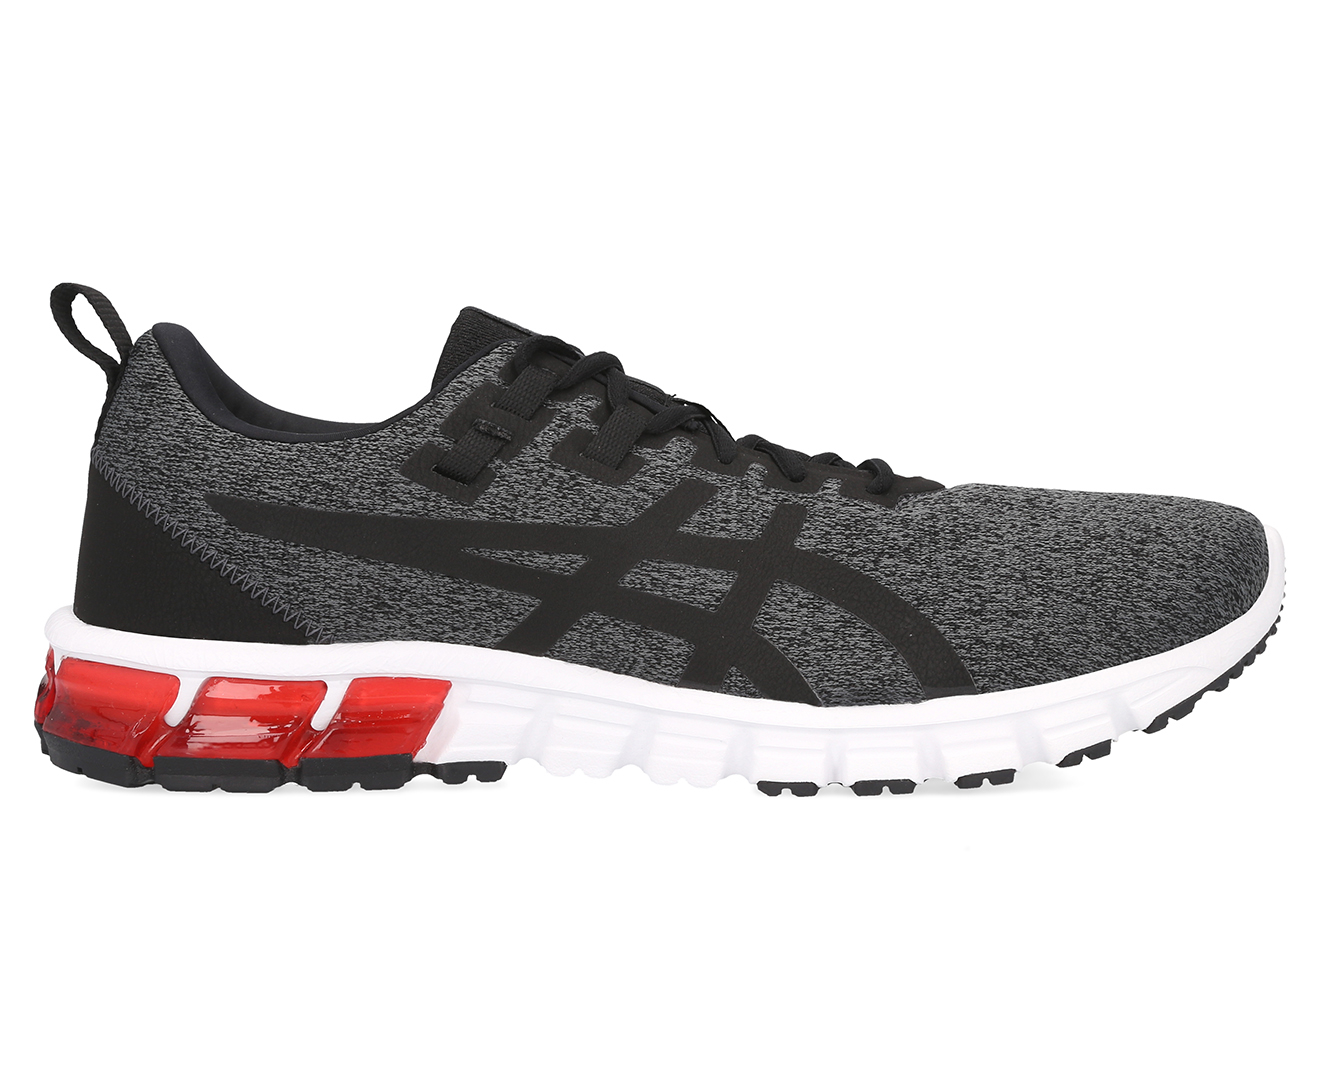 44ffc3c9c22175 ASICS Men's GEL-Quantum 90 Shoe - Dark Grey/Black | eBay